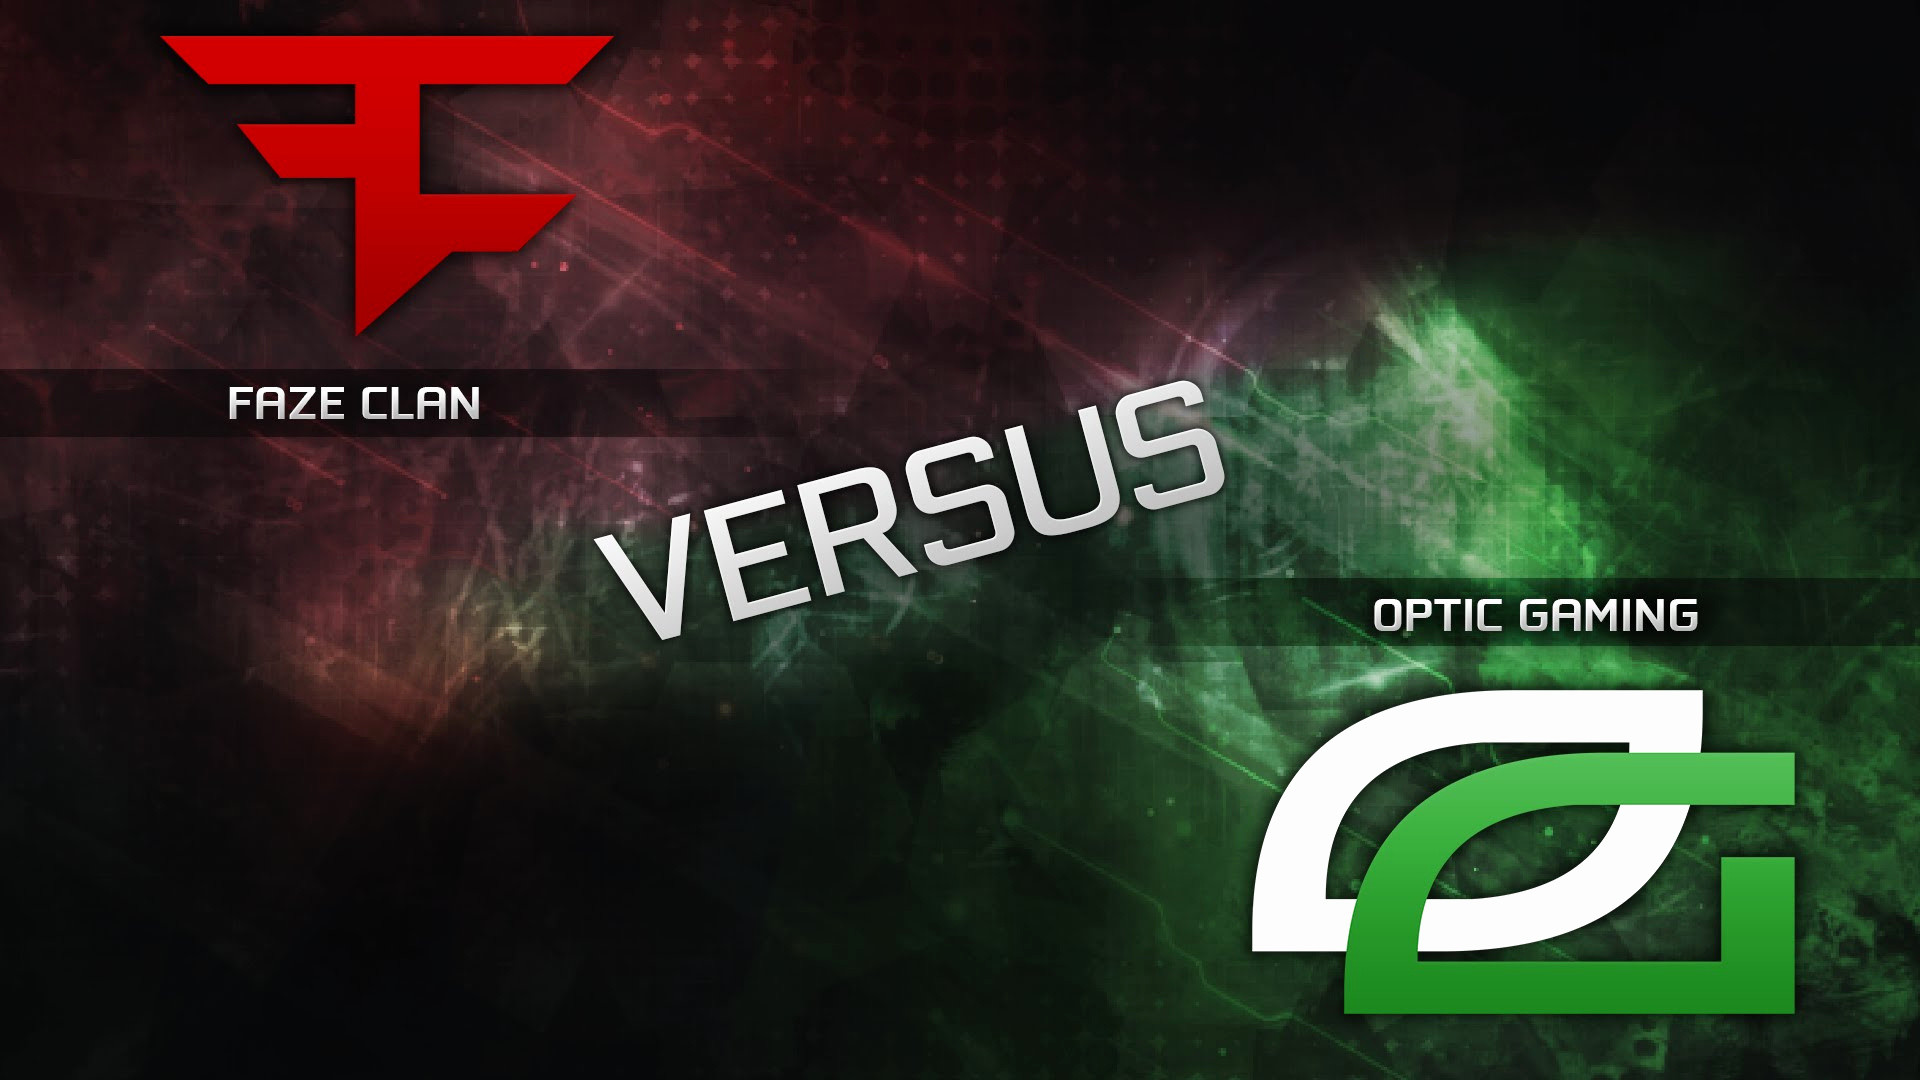 Res: 1920x1080, Faze Clan Logo Wallpaper Inspirational Faze Clan Vs Optic Gaming why  Practice is Important